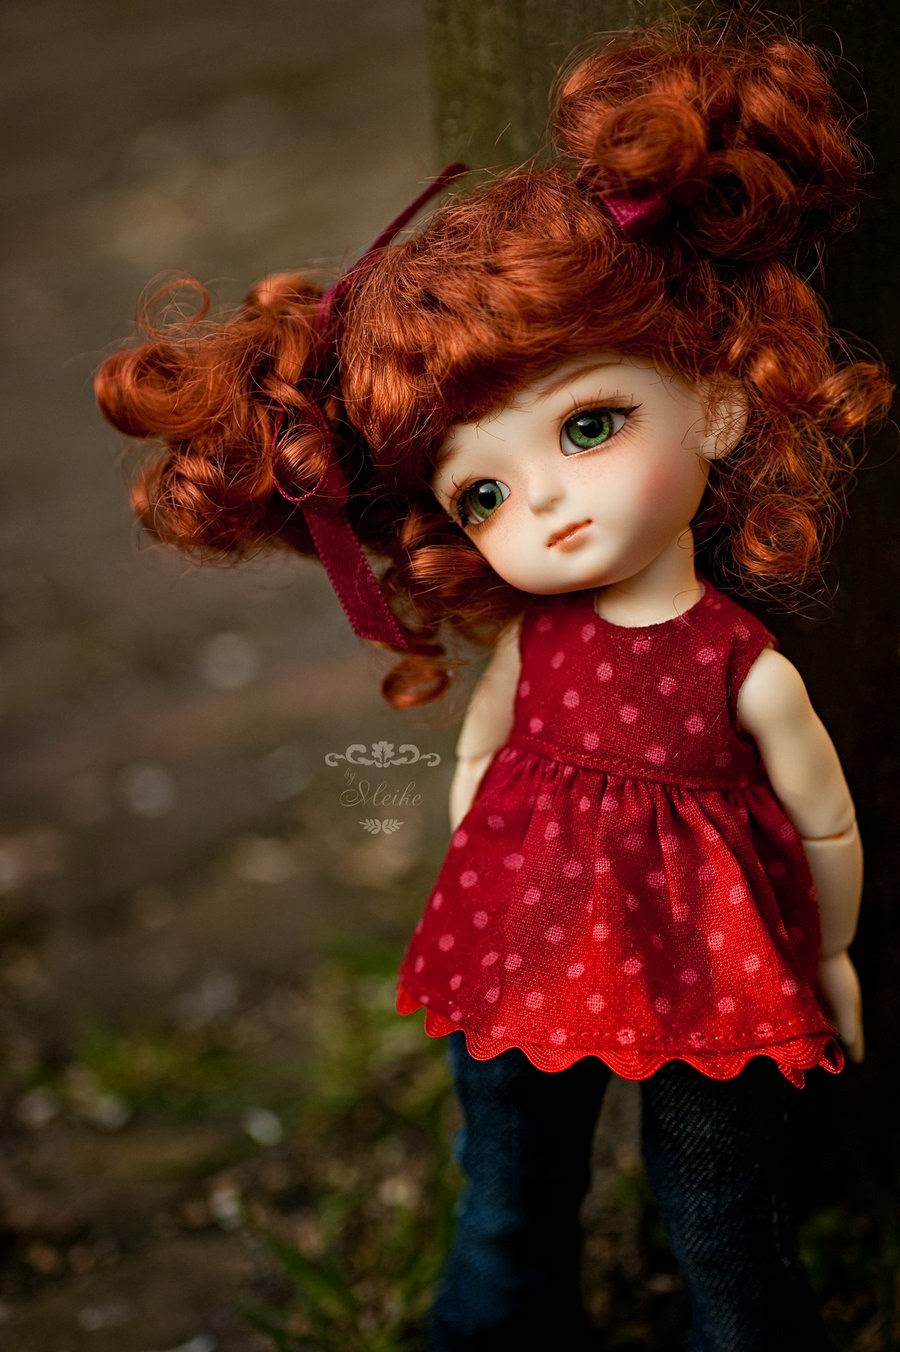 Latest Dolls HD Wallpaper   Deep HD Wallpapers For You HD Wallpapers 900x1352